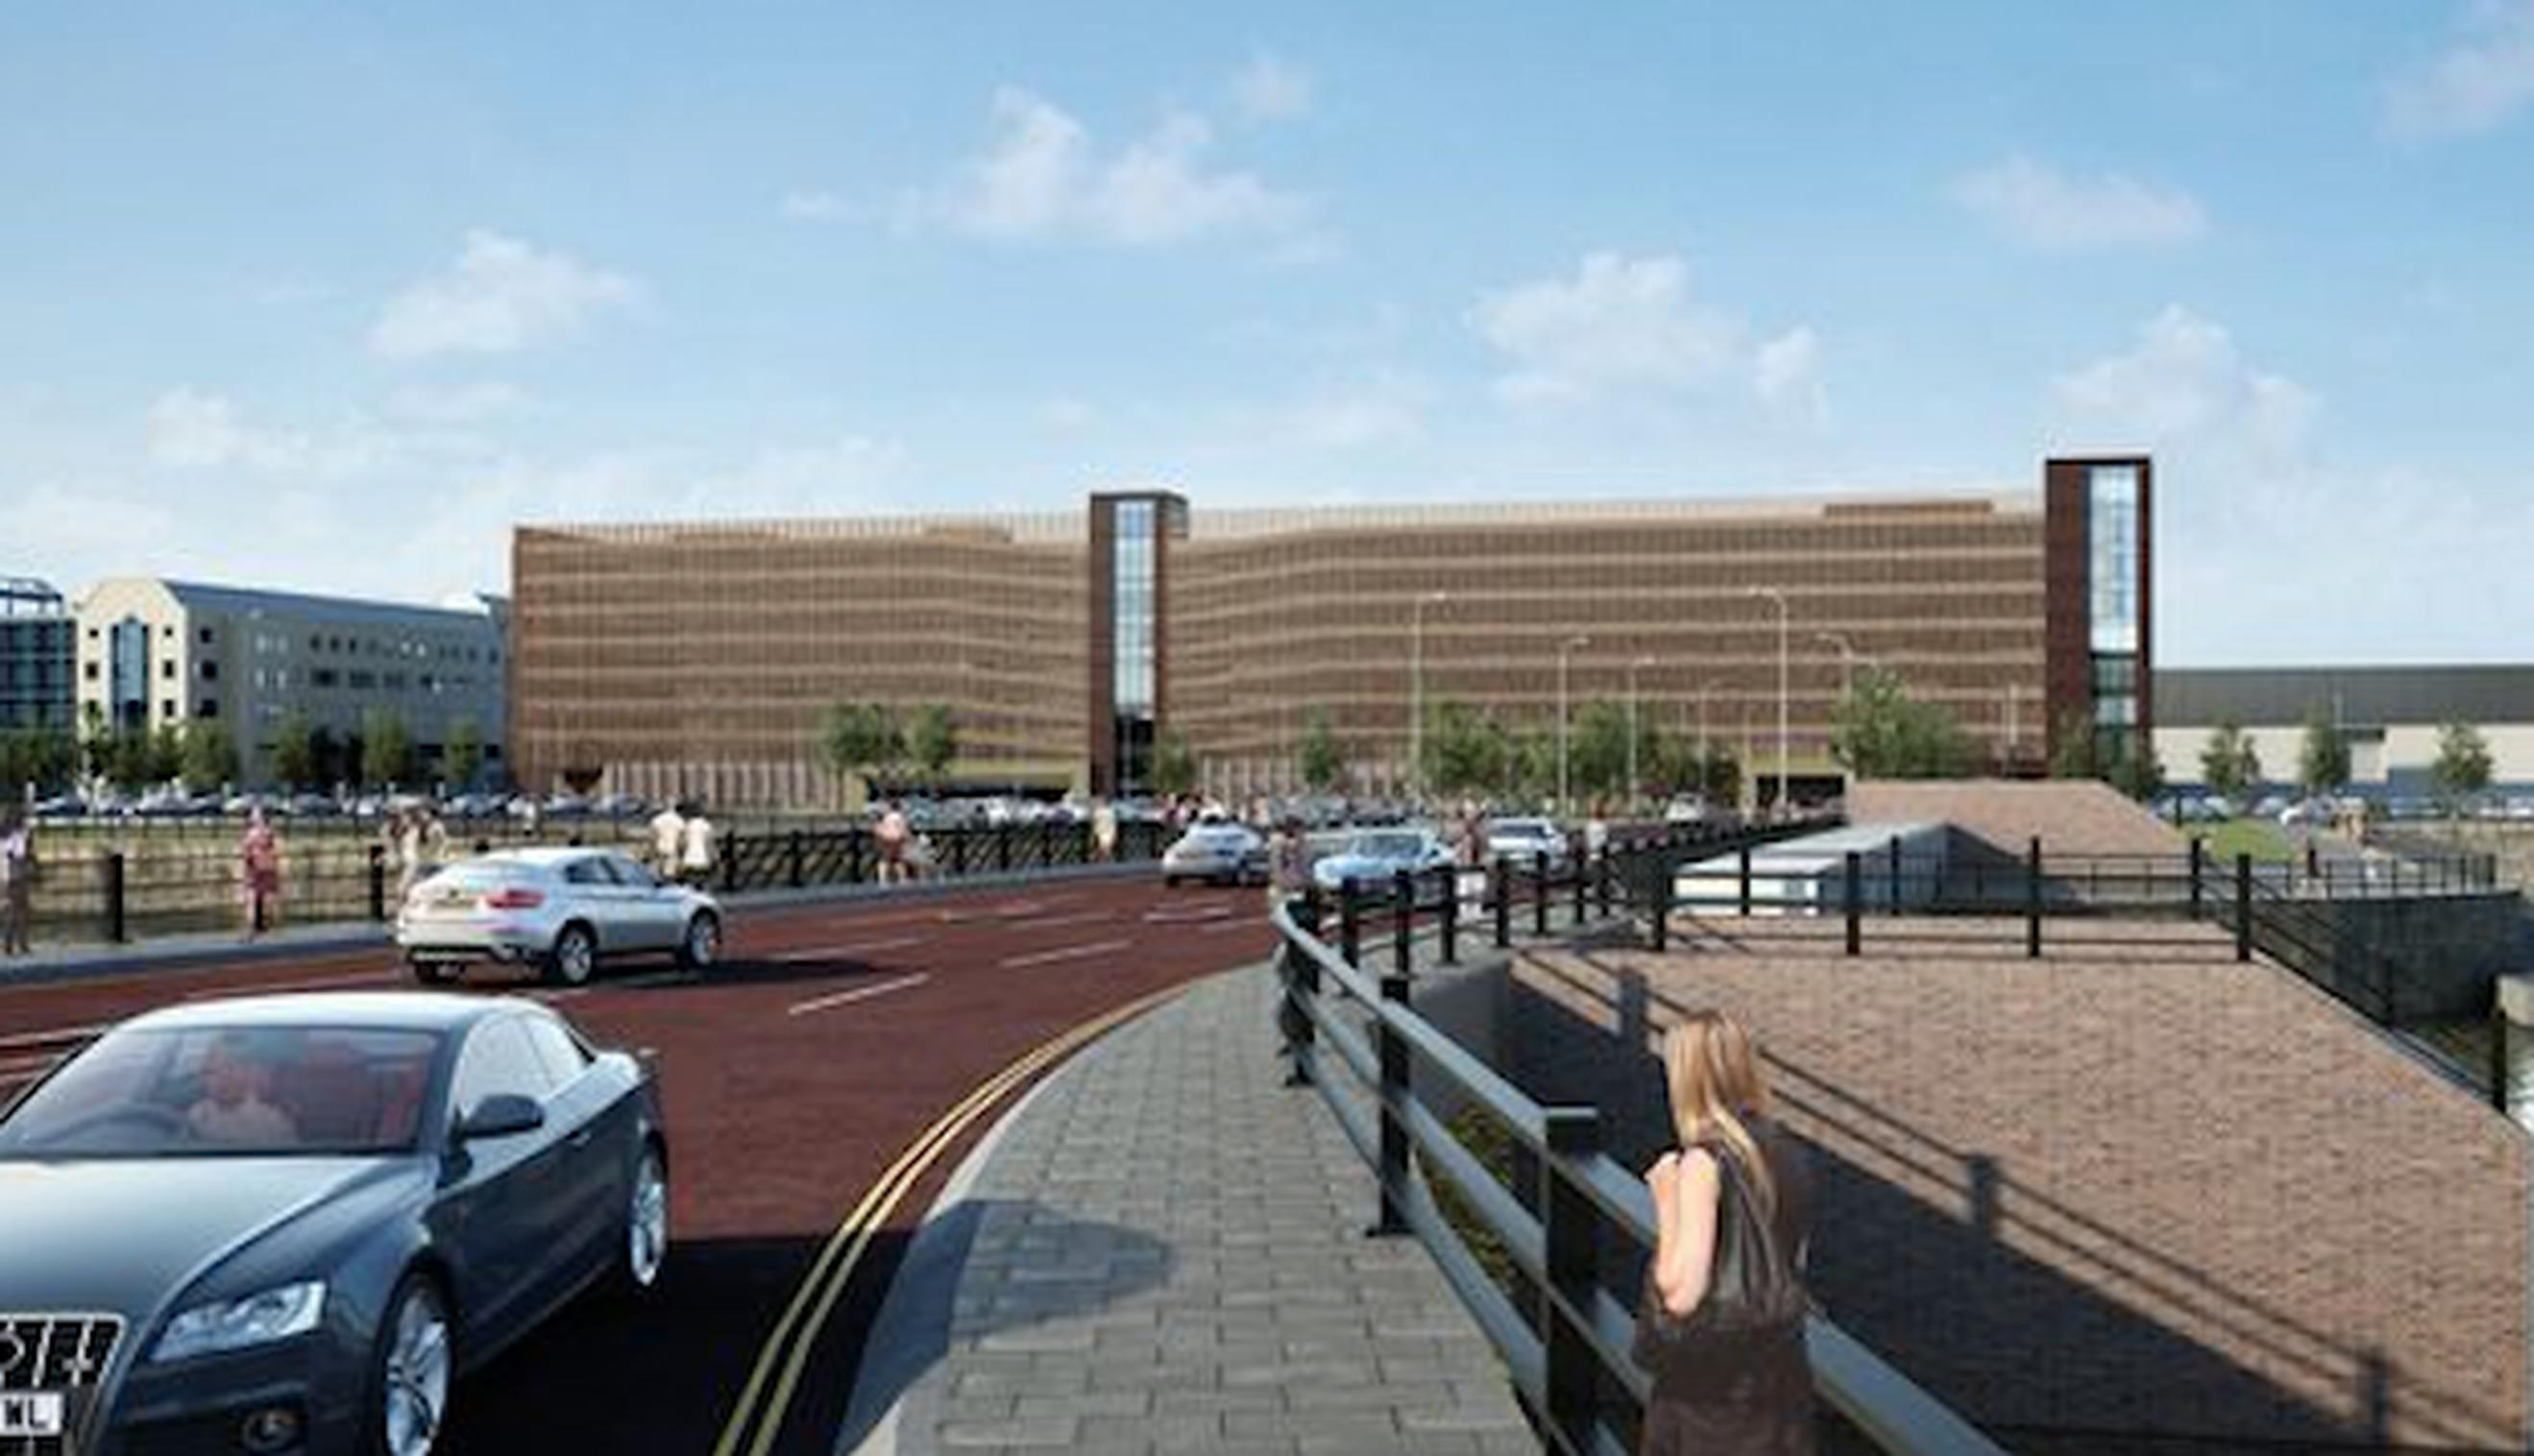 Design of new Liverpool multi-storey unveiled